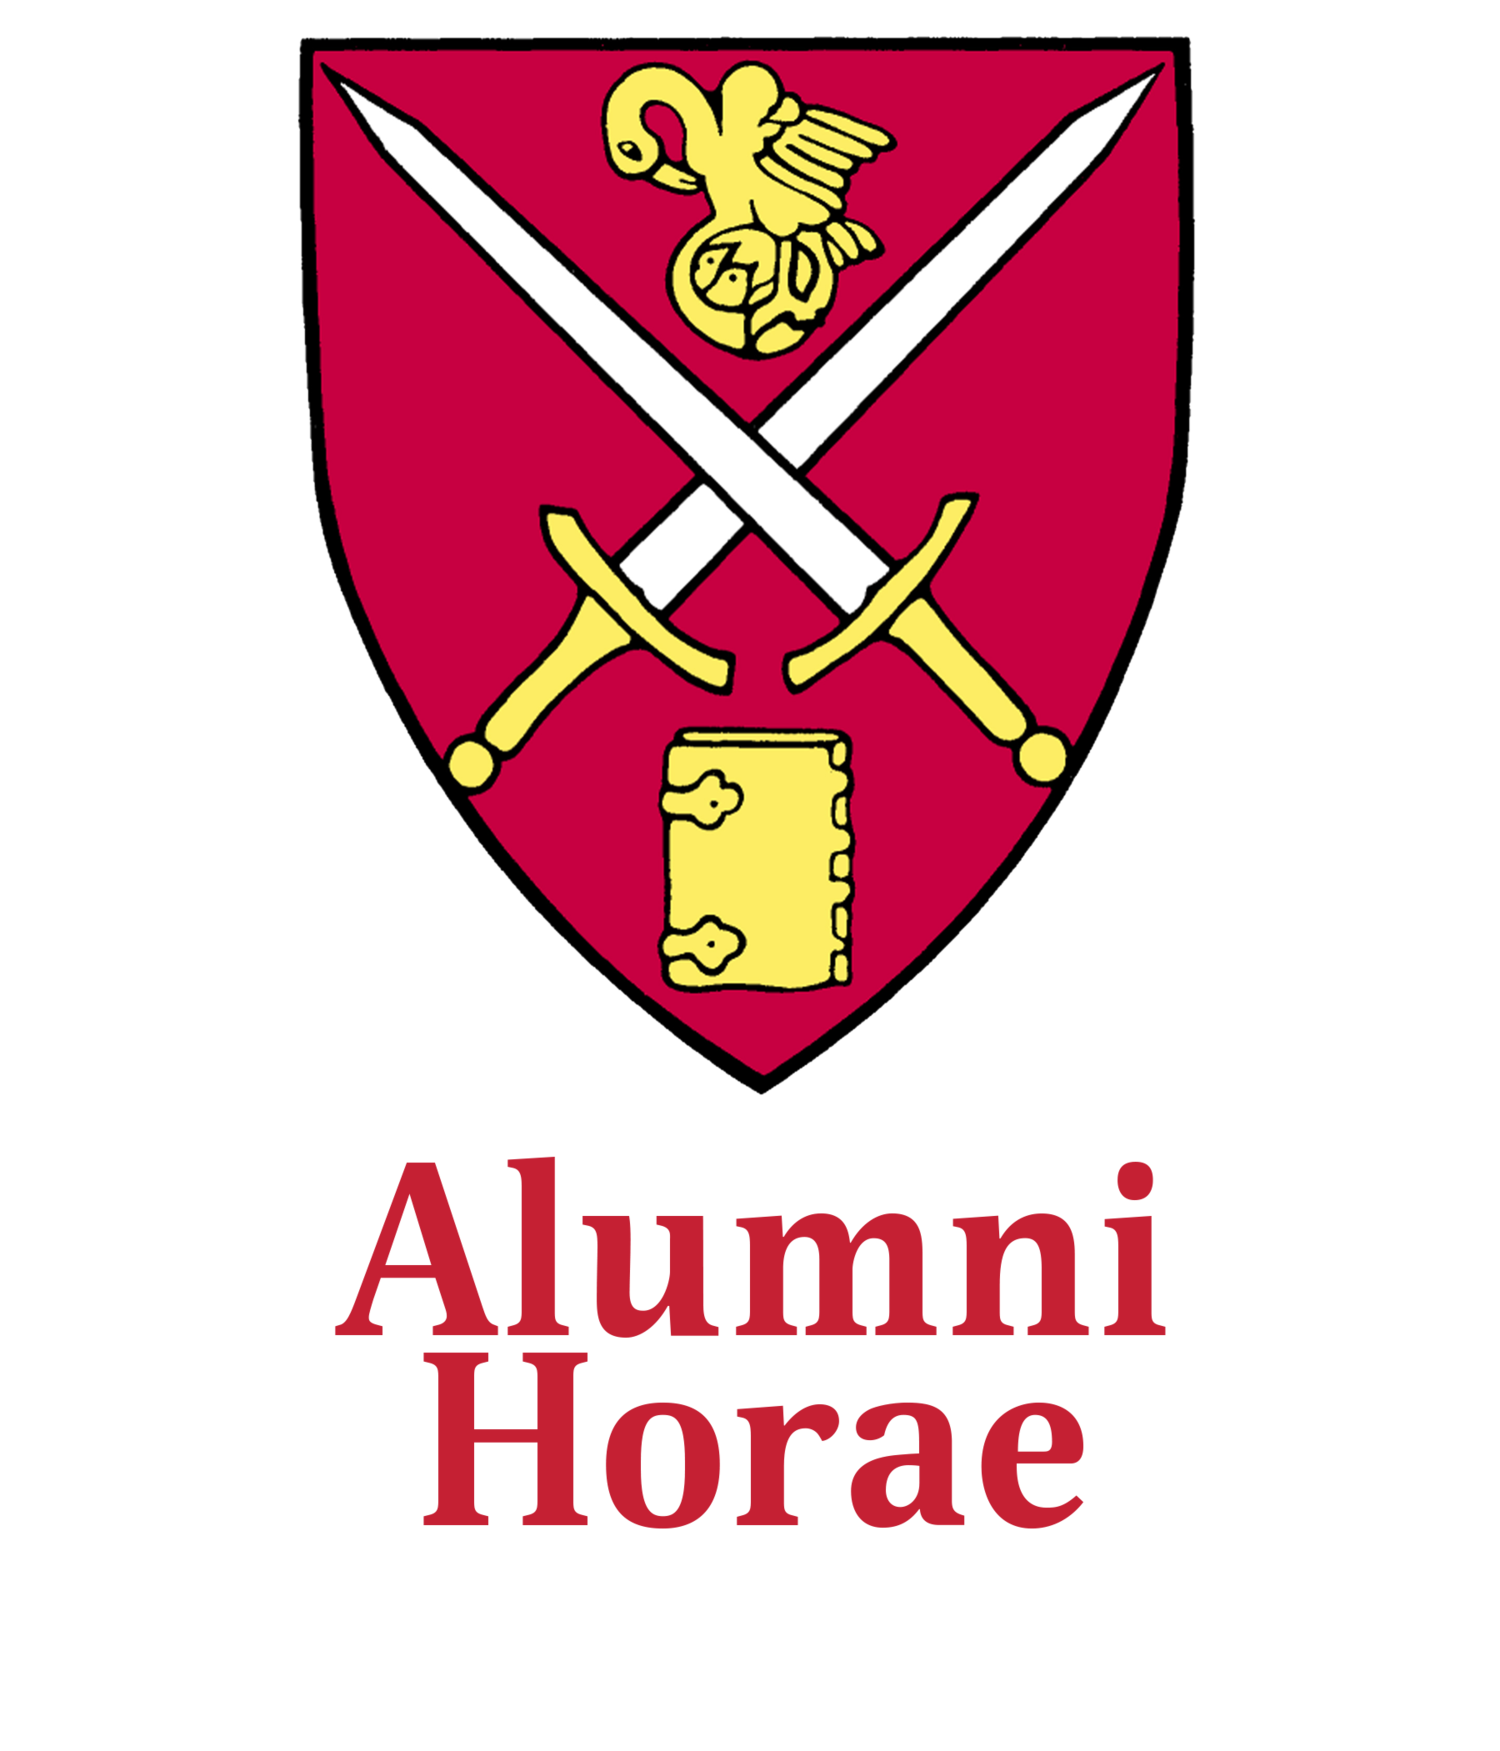 St. Paul's School Alumni Horae